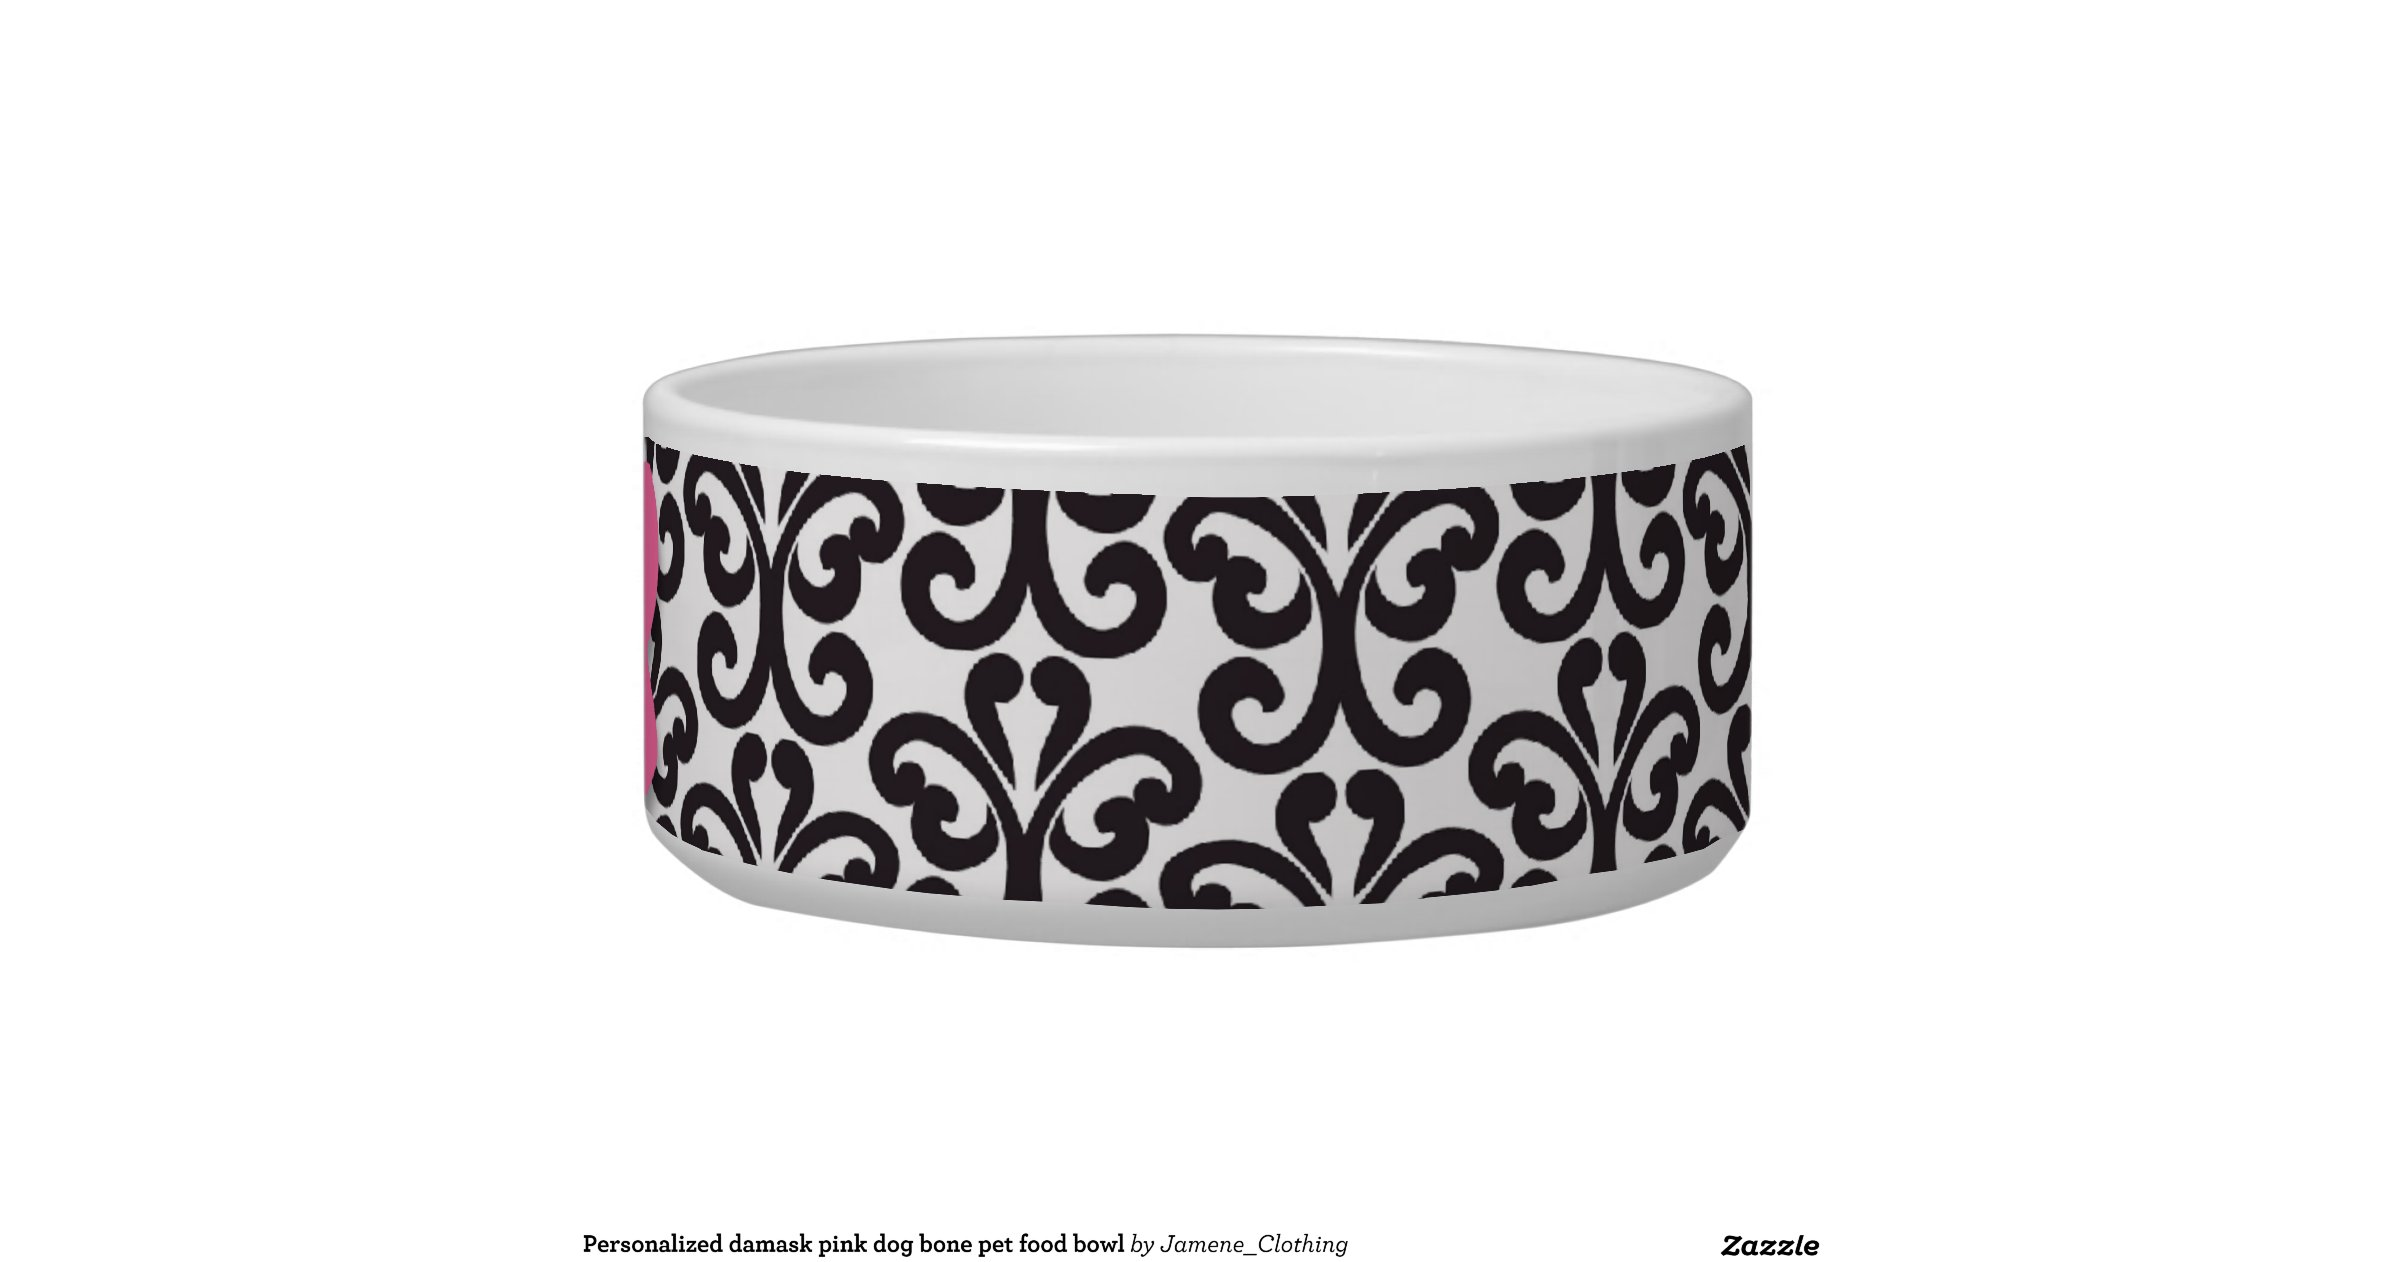 personalized_damask_pink_dog_bone_pet_food_bowl ... - photo#24